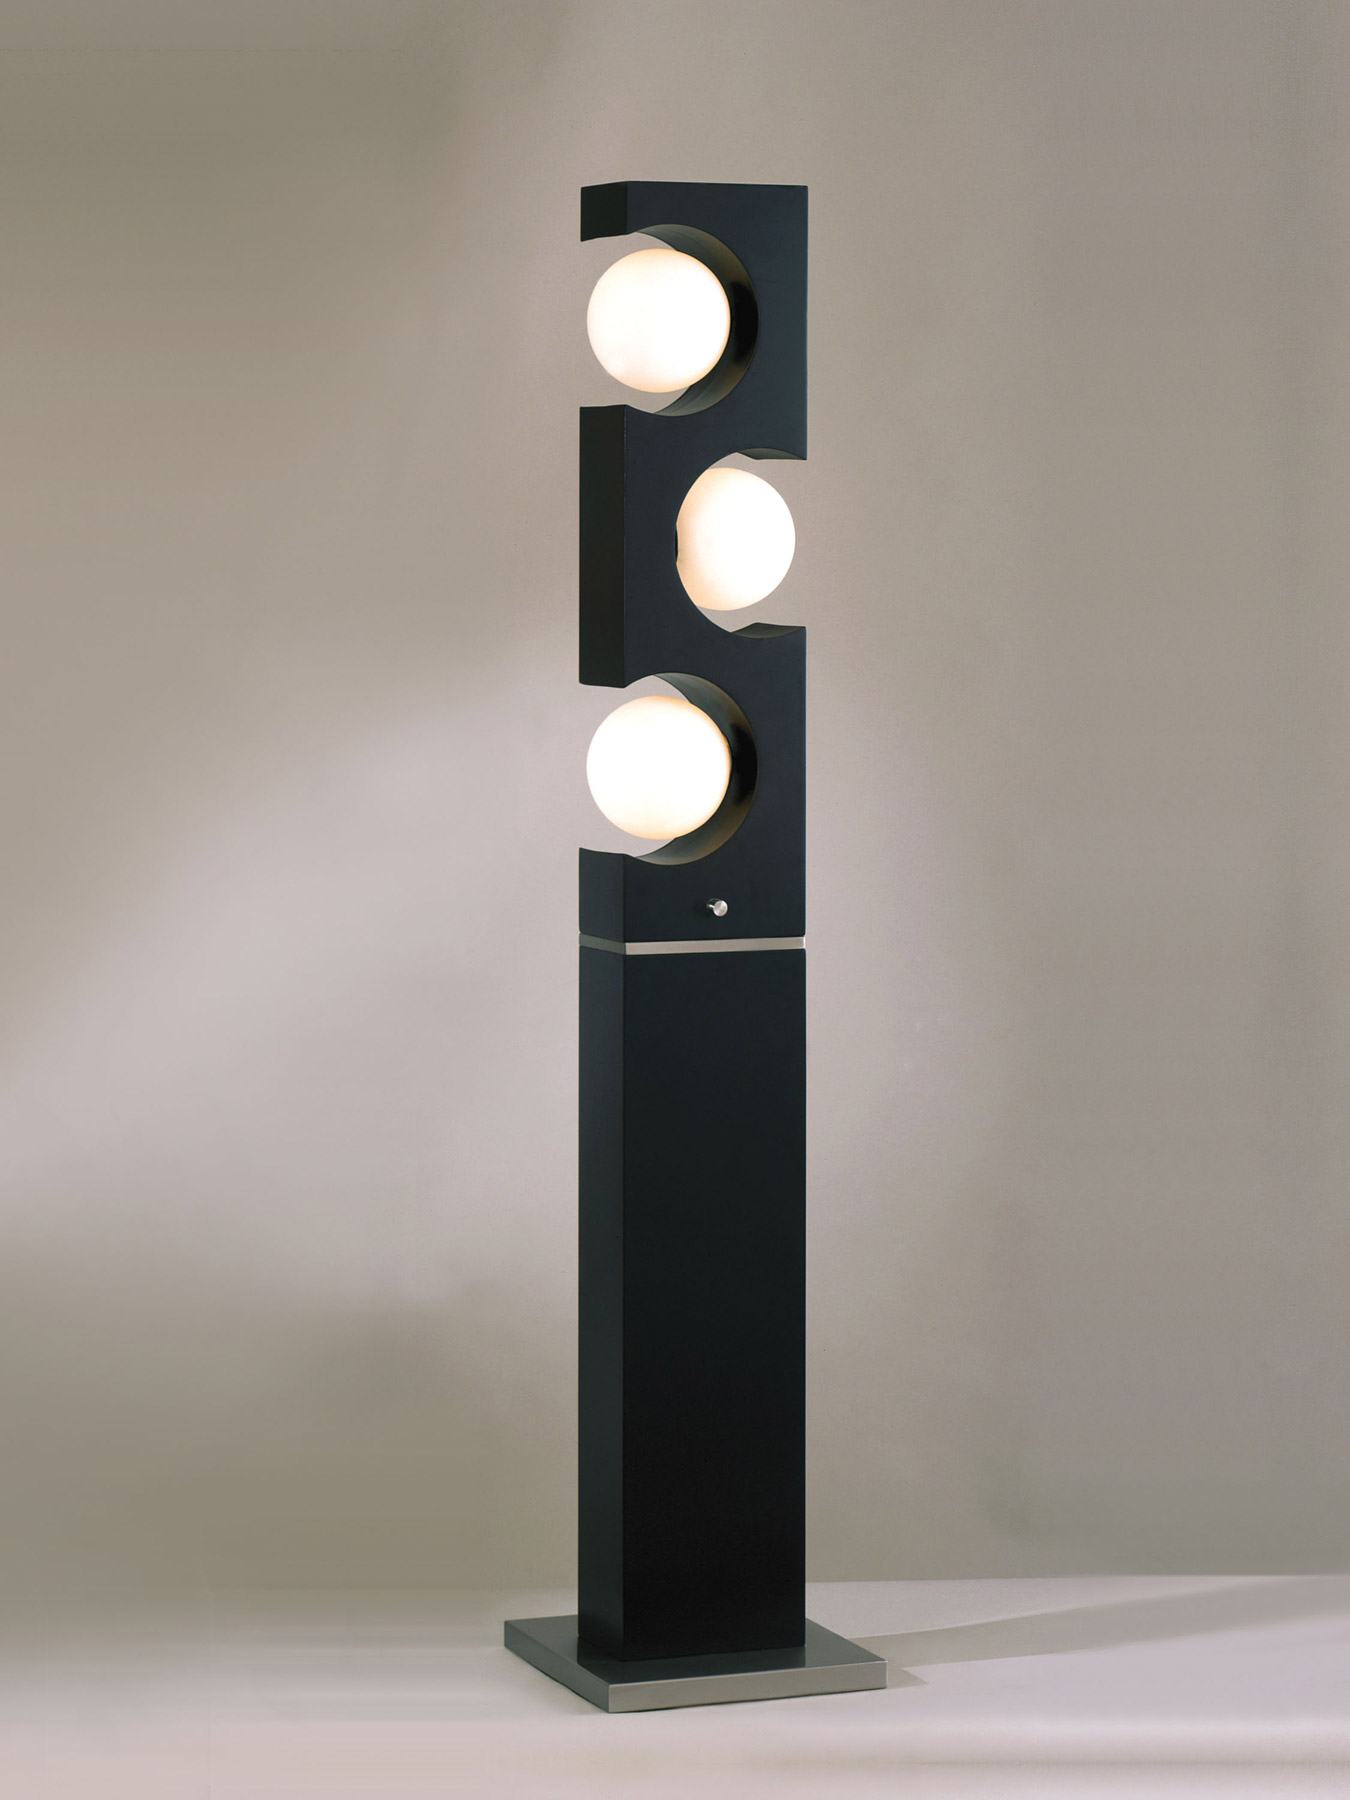 Nova lighting 2343 nova 1960 floor lamp aloadofball